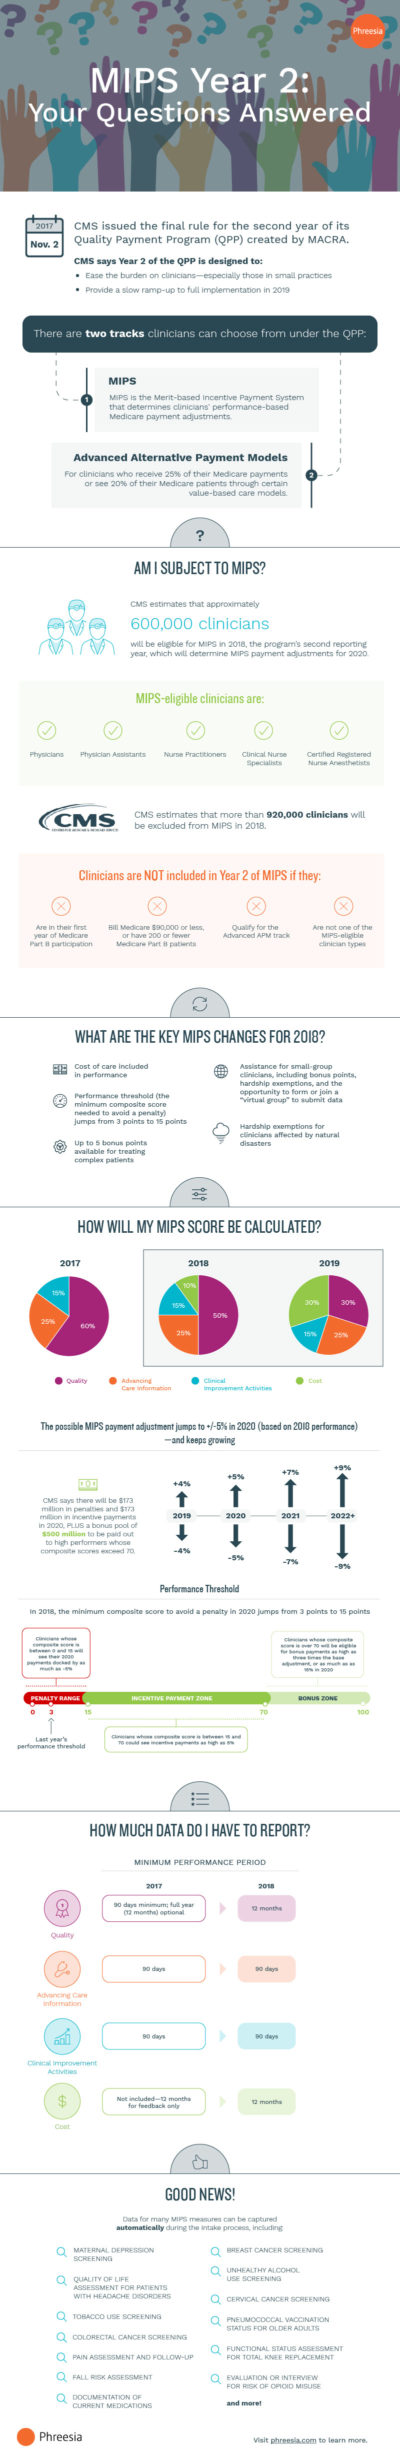 An infographic explaining the key takeaways from the second year of the Merit-Based Incentive Payment System (MIPS) for 2018.